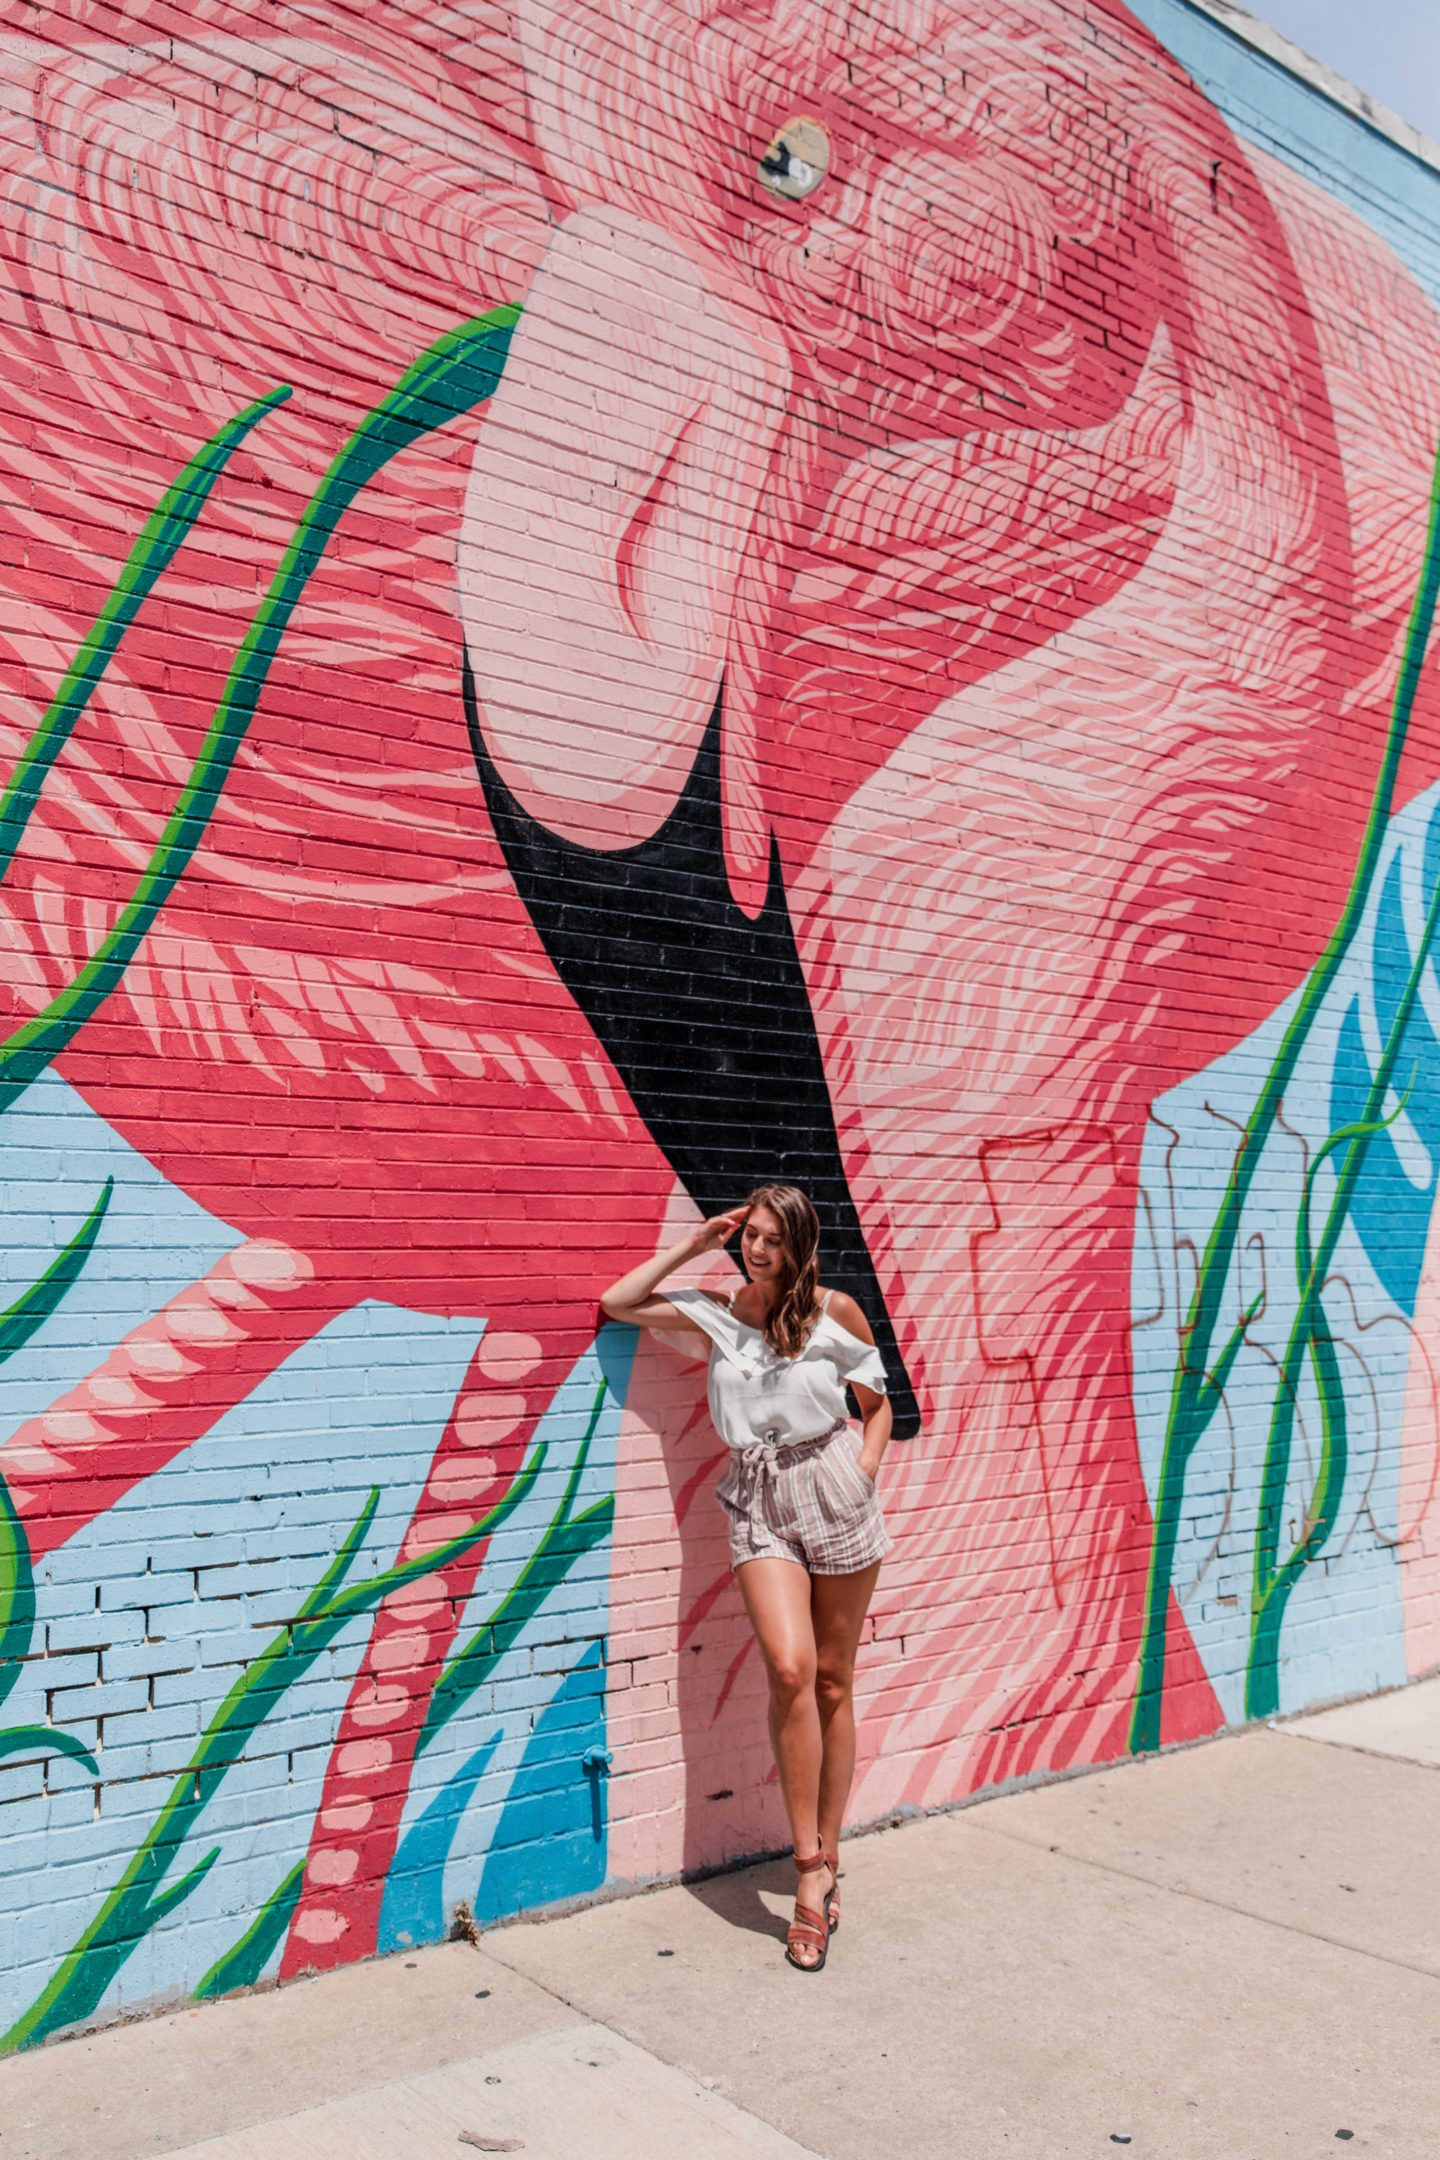 Chicago Travel Guide | What to Do: Find the Flamingo Wall